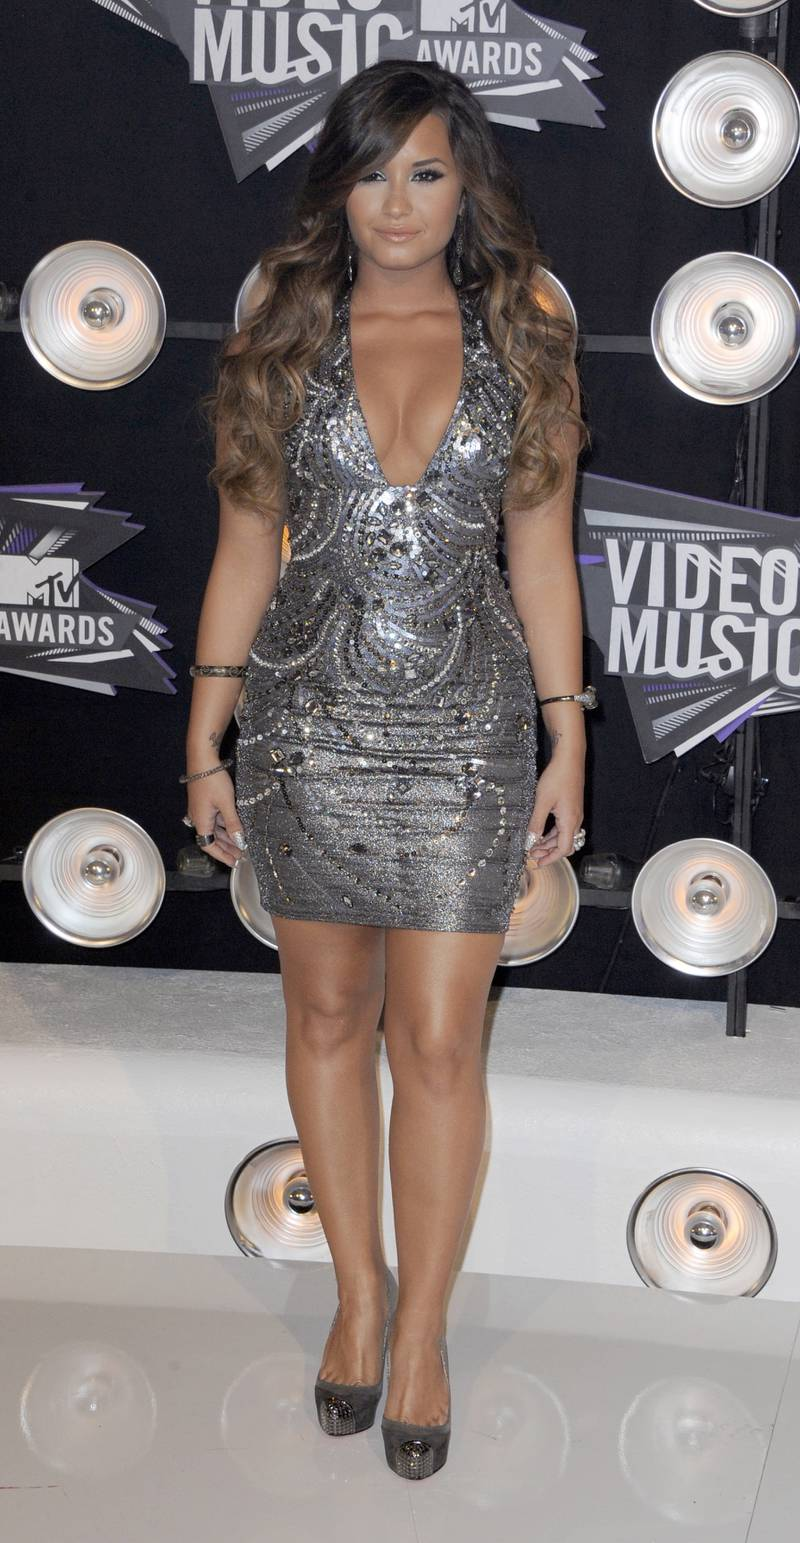 epa02886340 US singer Demi Lovato arrives for the MTV Video Music Awards 2011 at the Nokia Theatre in Los Angeles, California, USA, 28 August 2011.  EPA/PAUL BUCK